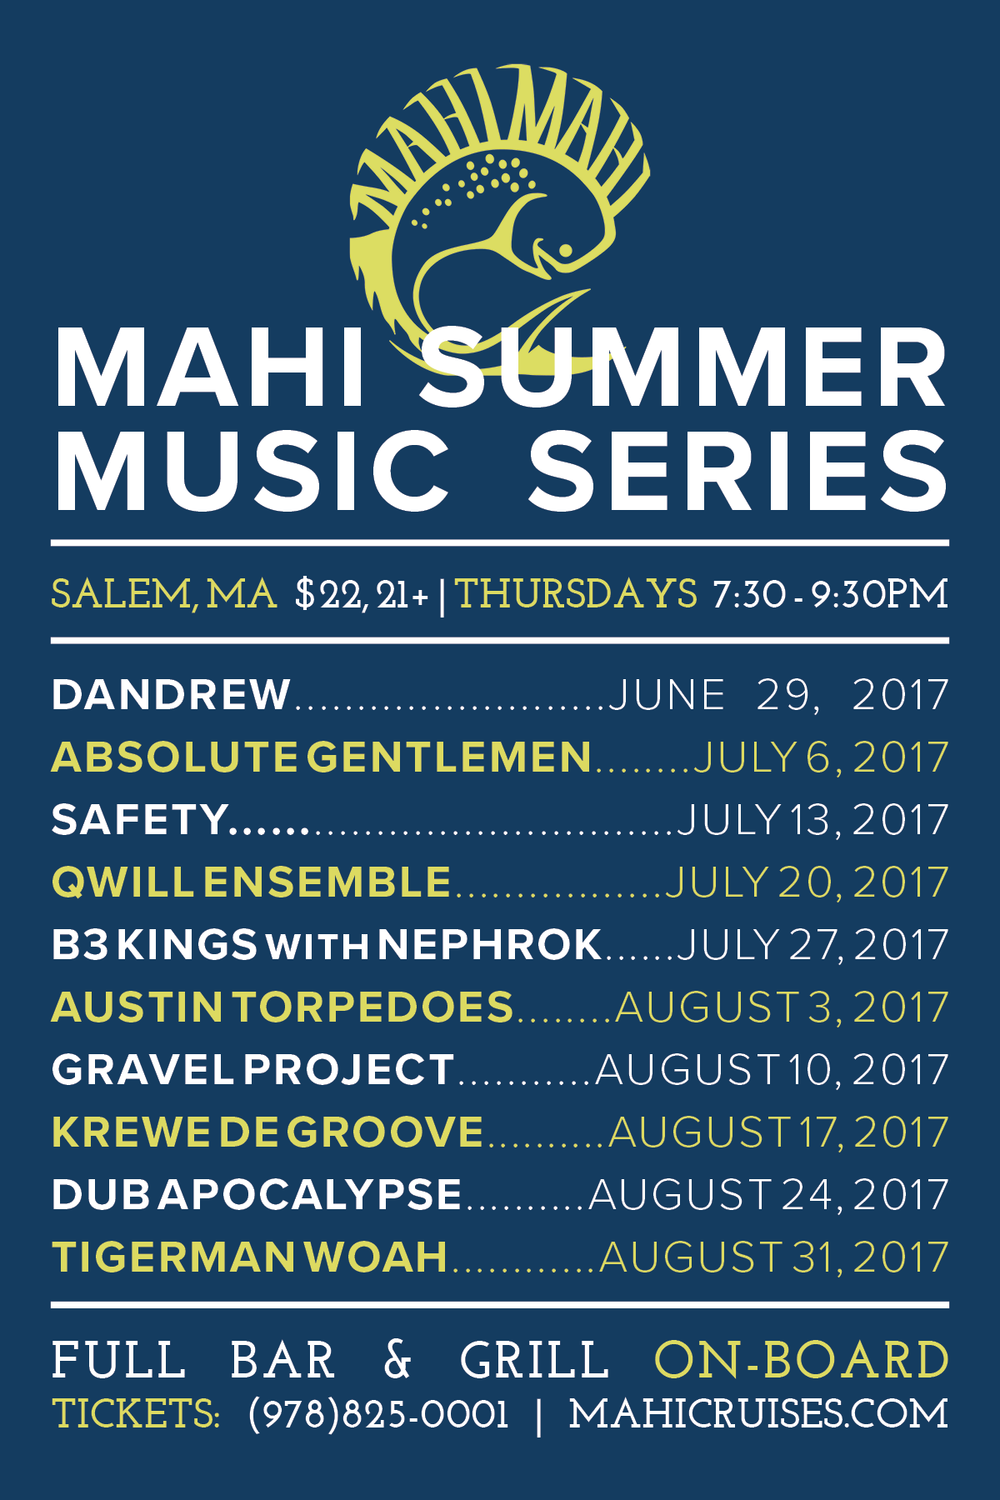 mahi summer music series 2017